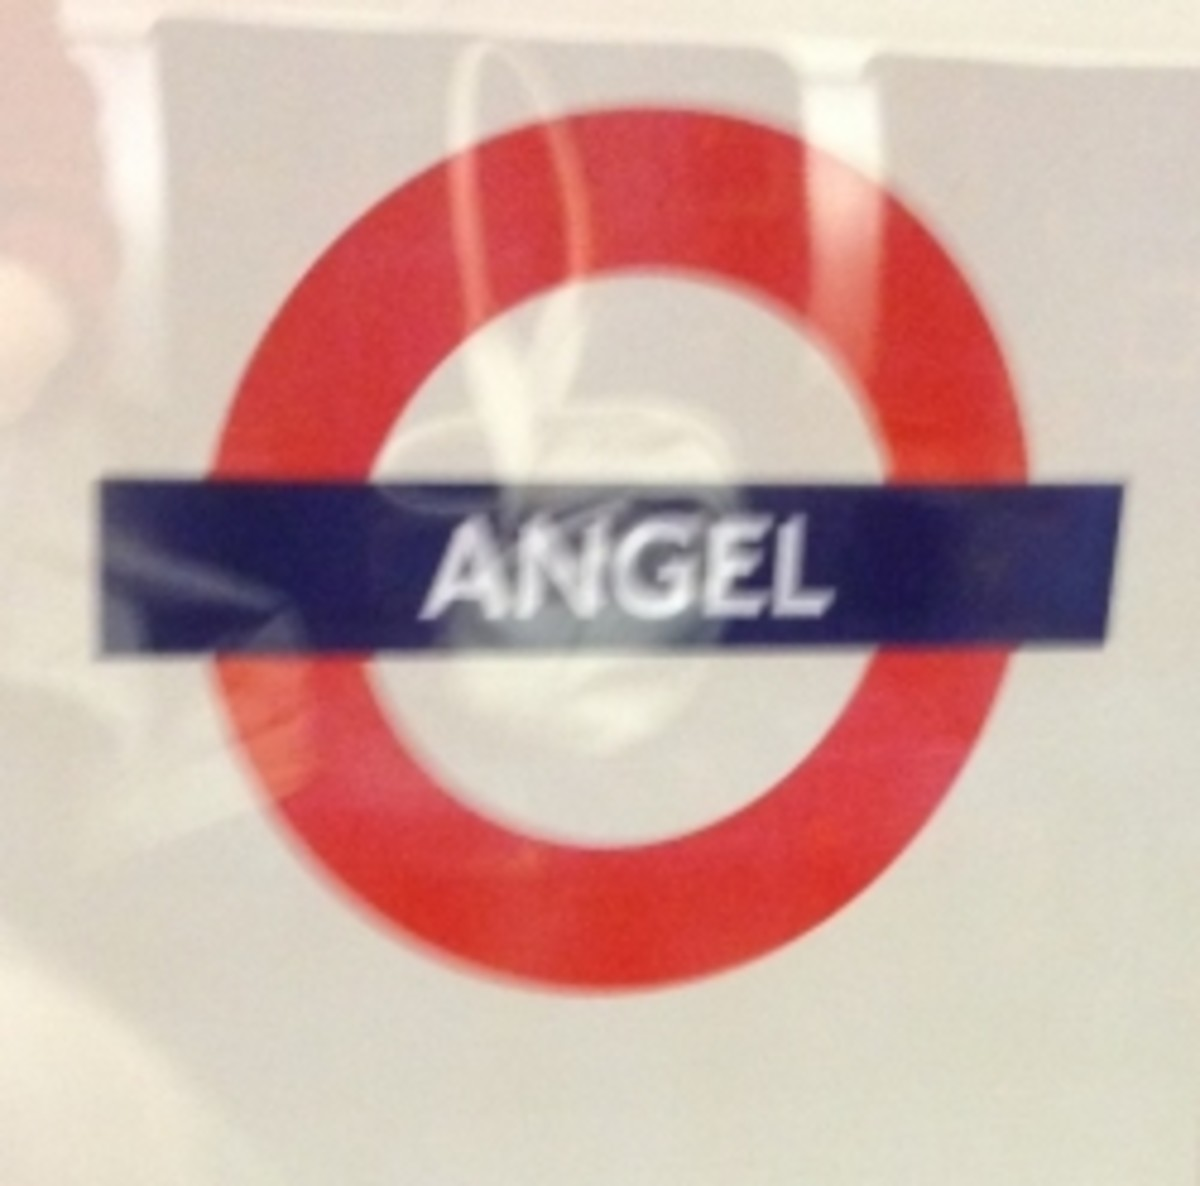 All about angels and cherubs - Angel tube station, London UK